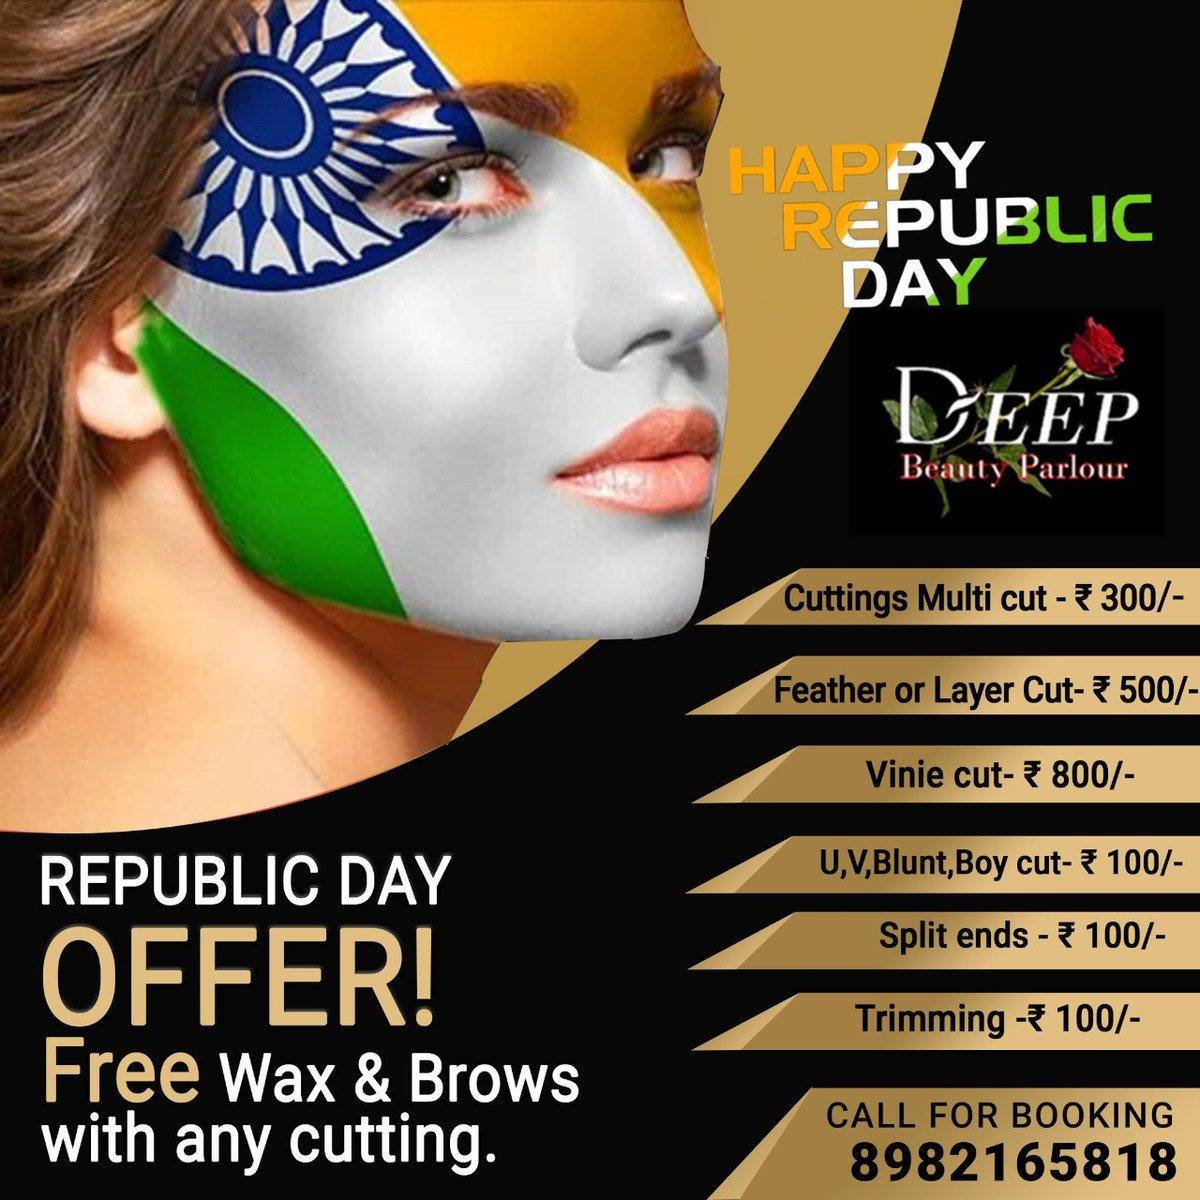 Wish you all a very happy and great Republic Day from DEEP BEAUTY SALON! ENJOY OUR SUPER OFFER  by getting FREE Brows & Wax with any hair cut! #haircut #hair #hairstyle #haircolor #26jan #hairstyles #barbershop #hairstylist #barberlife #republicdayoffer #barbershopconnect